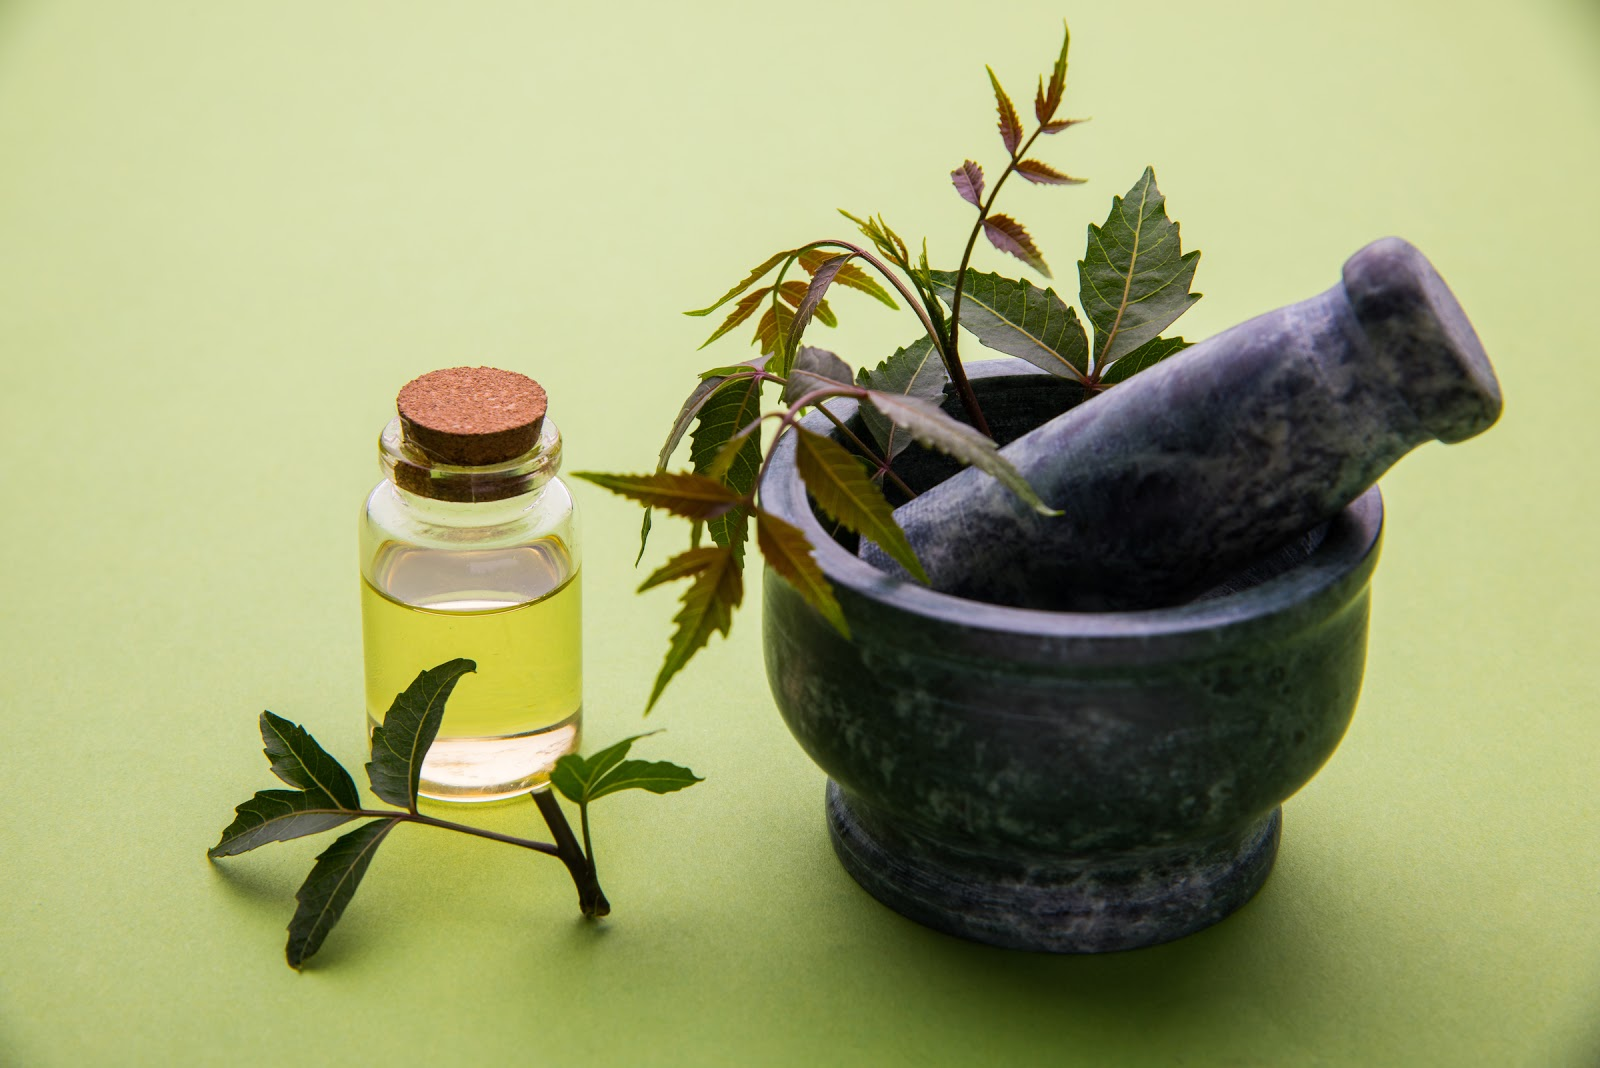 Antiviral herbs in a mortar and pestle next to a bottle of neem oil